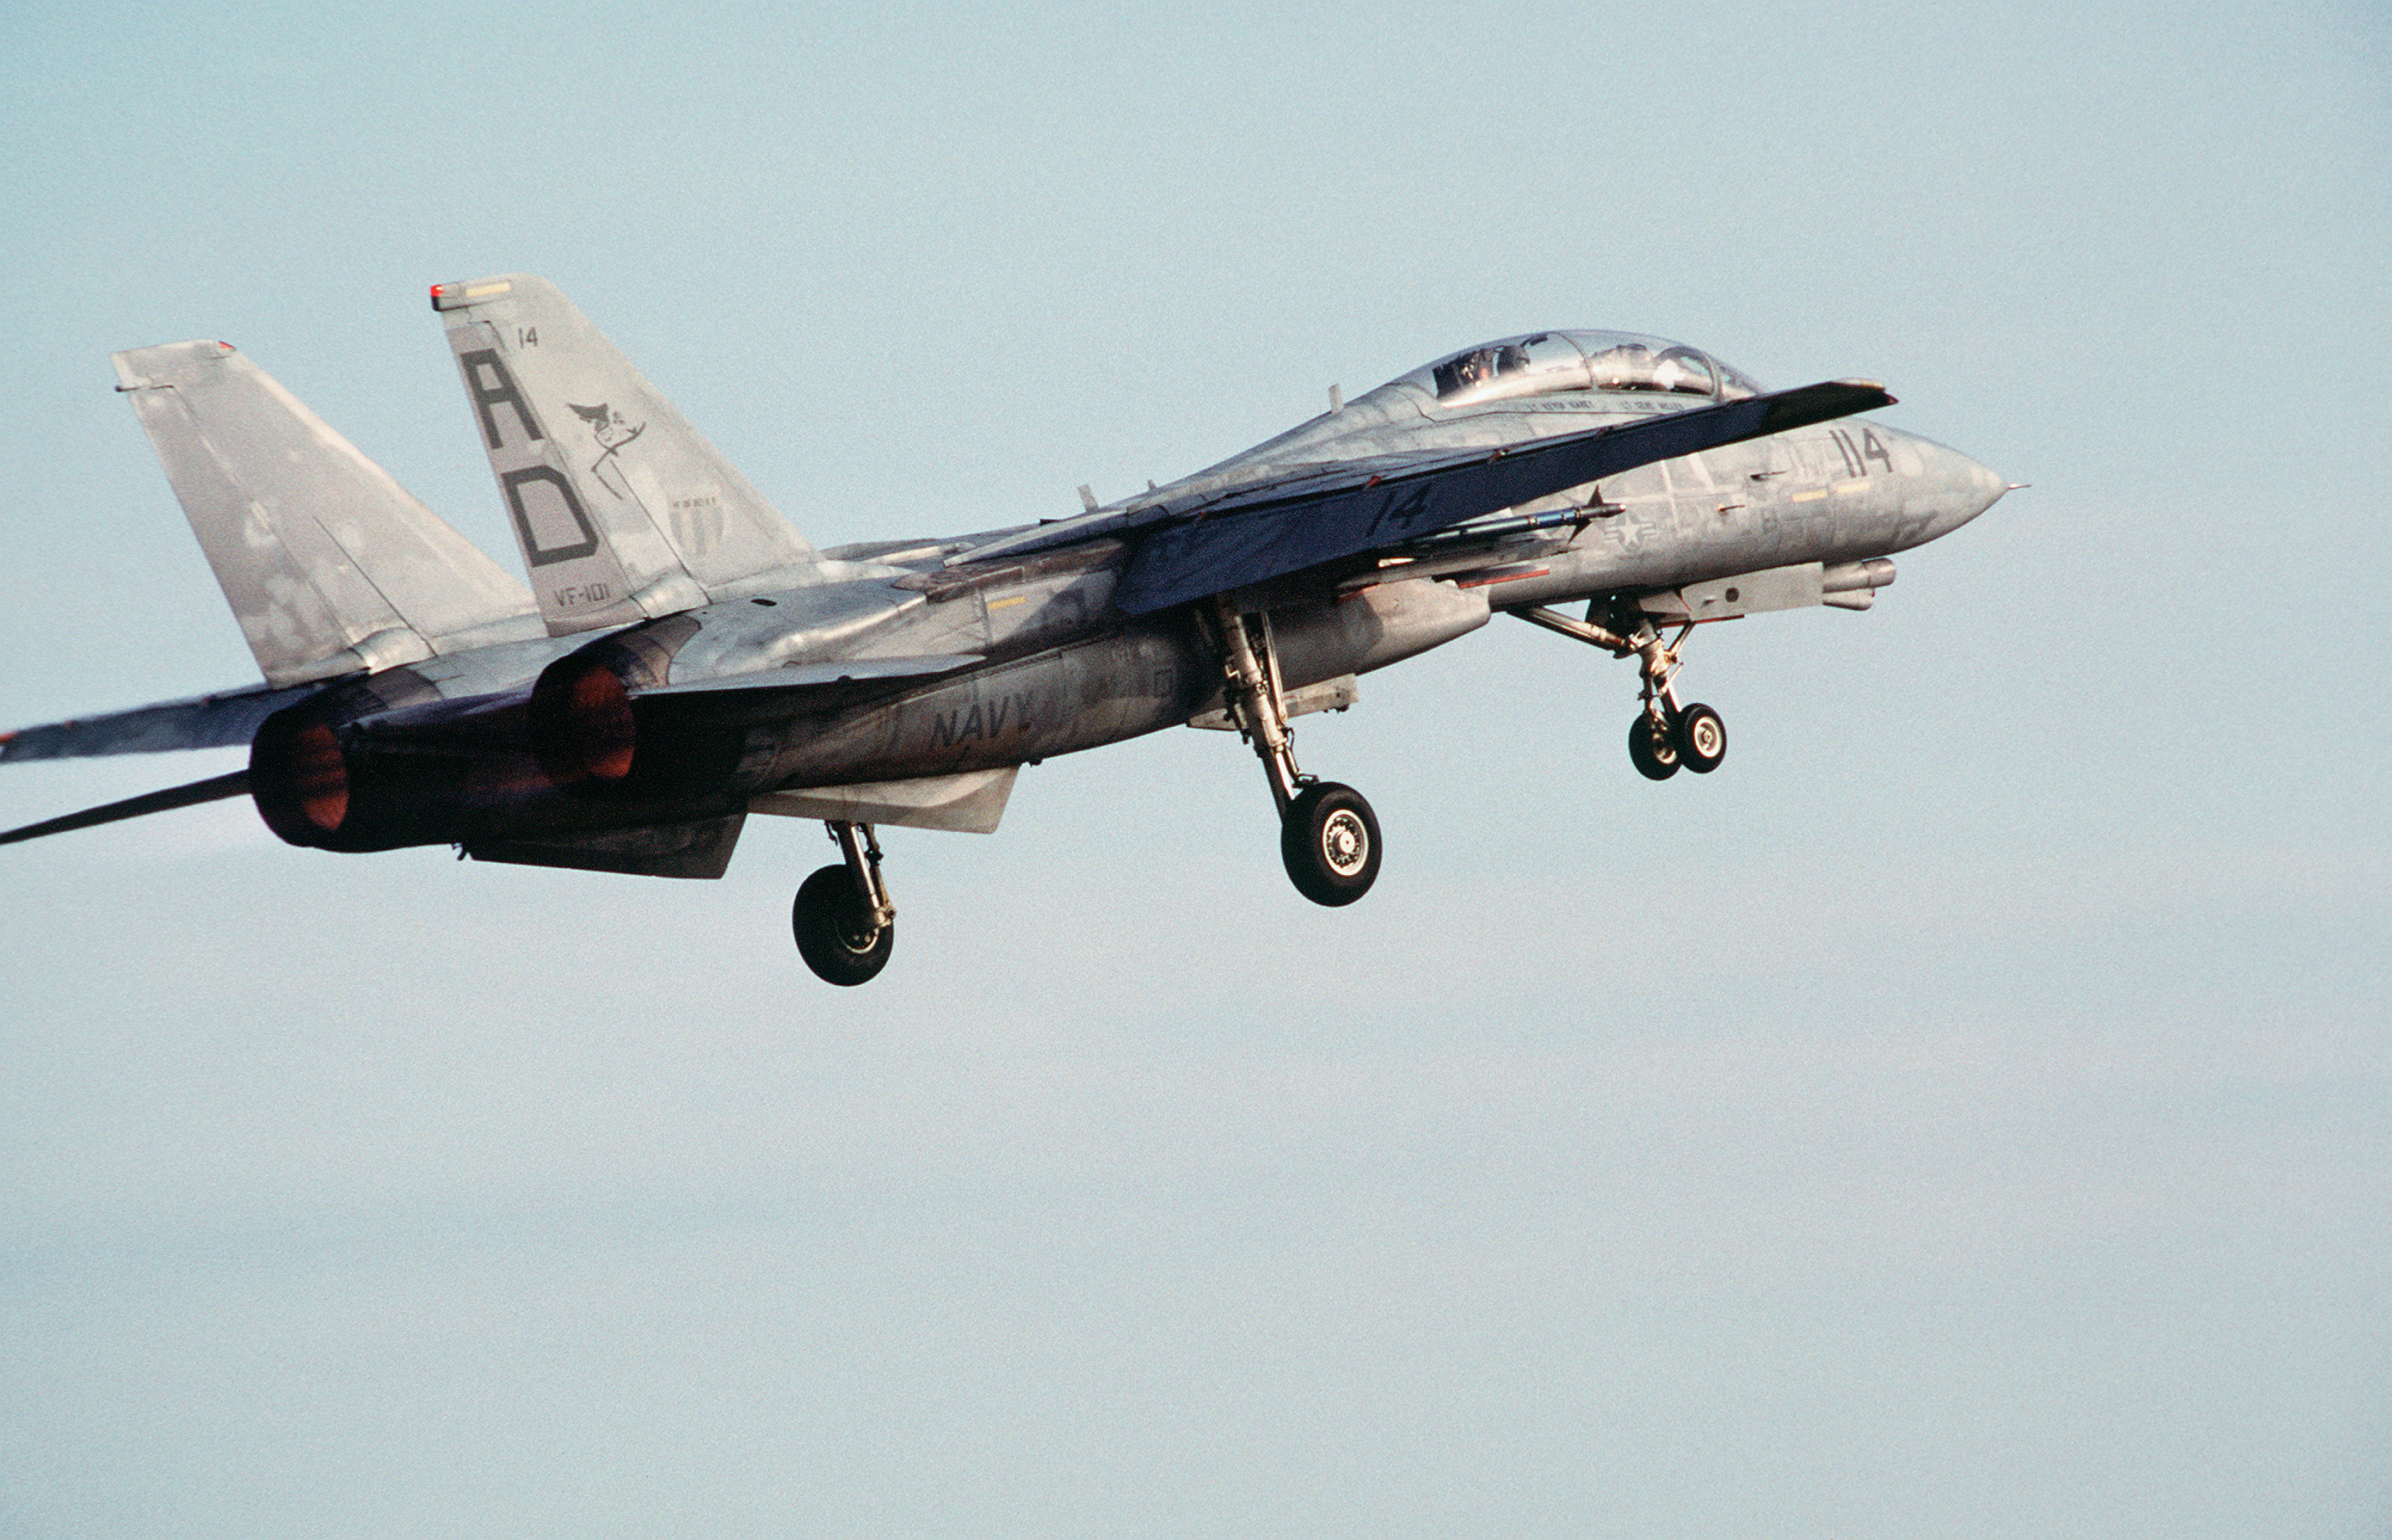 F 14 Tomcat with landing gear down